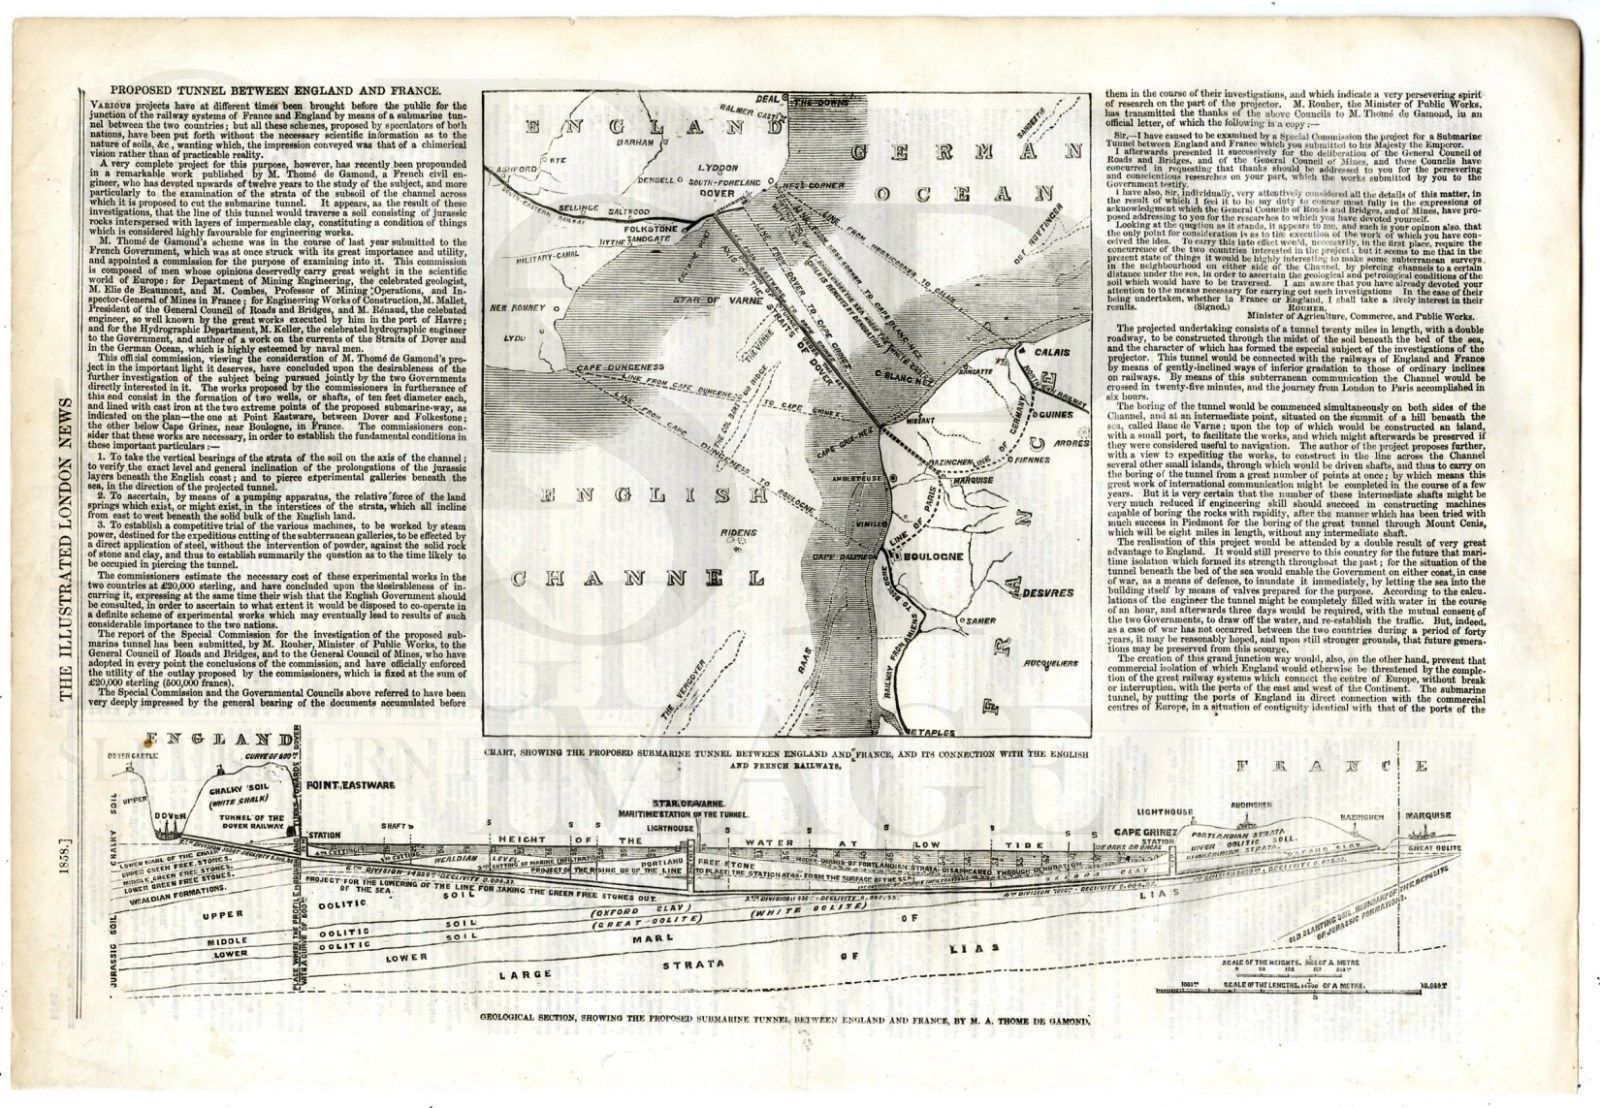 Map Of England France.1858 Map Chart Channel Tunnel Mining England France Railway De